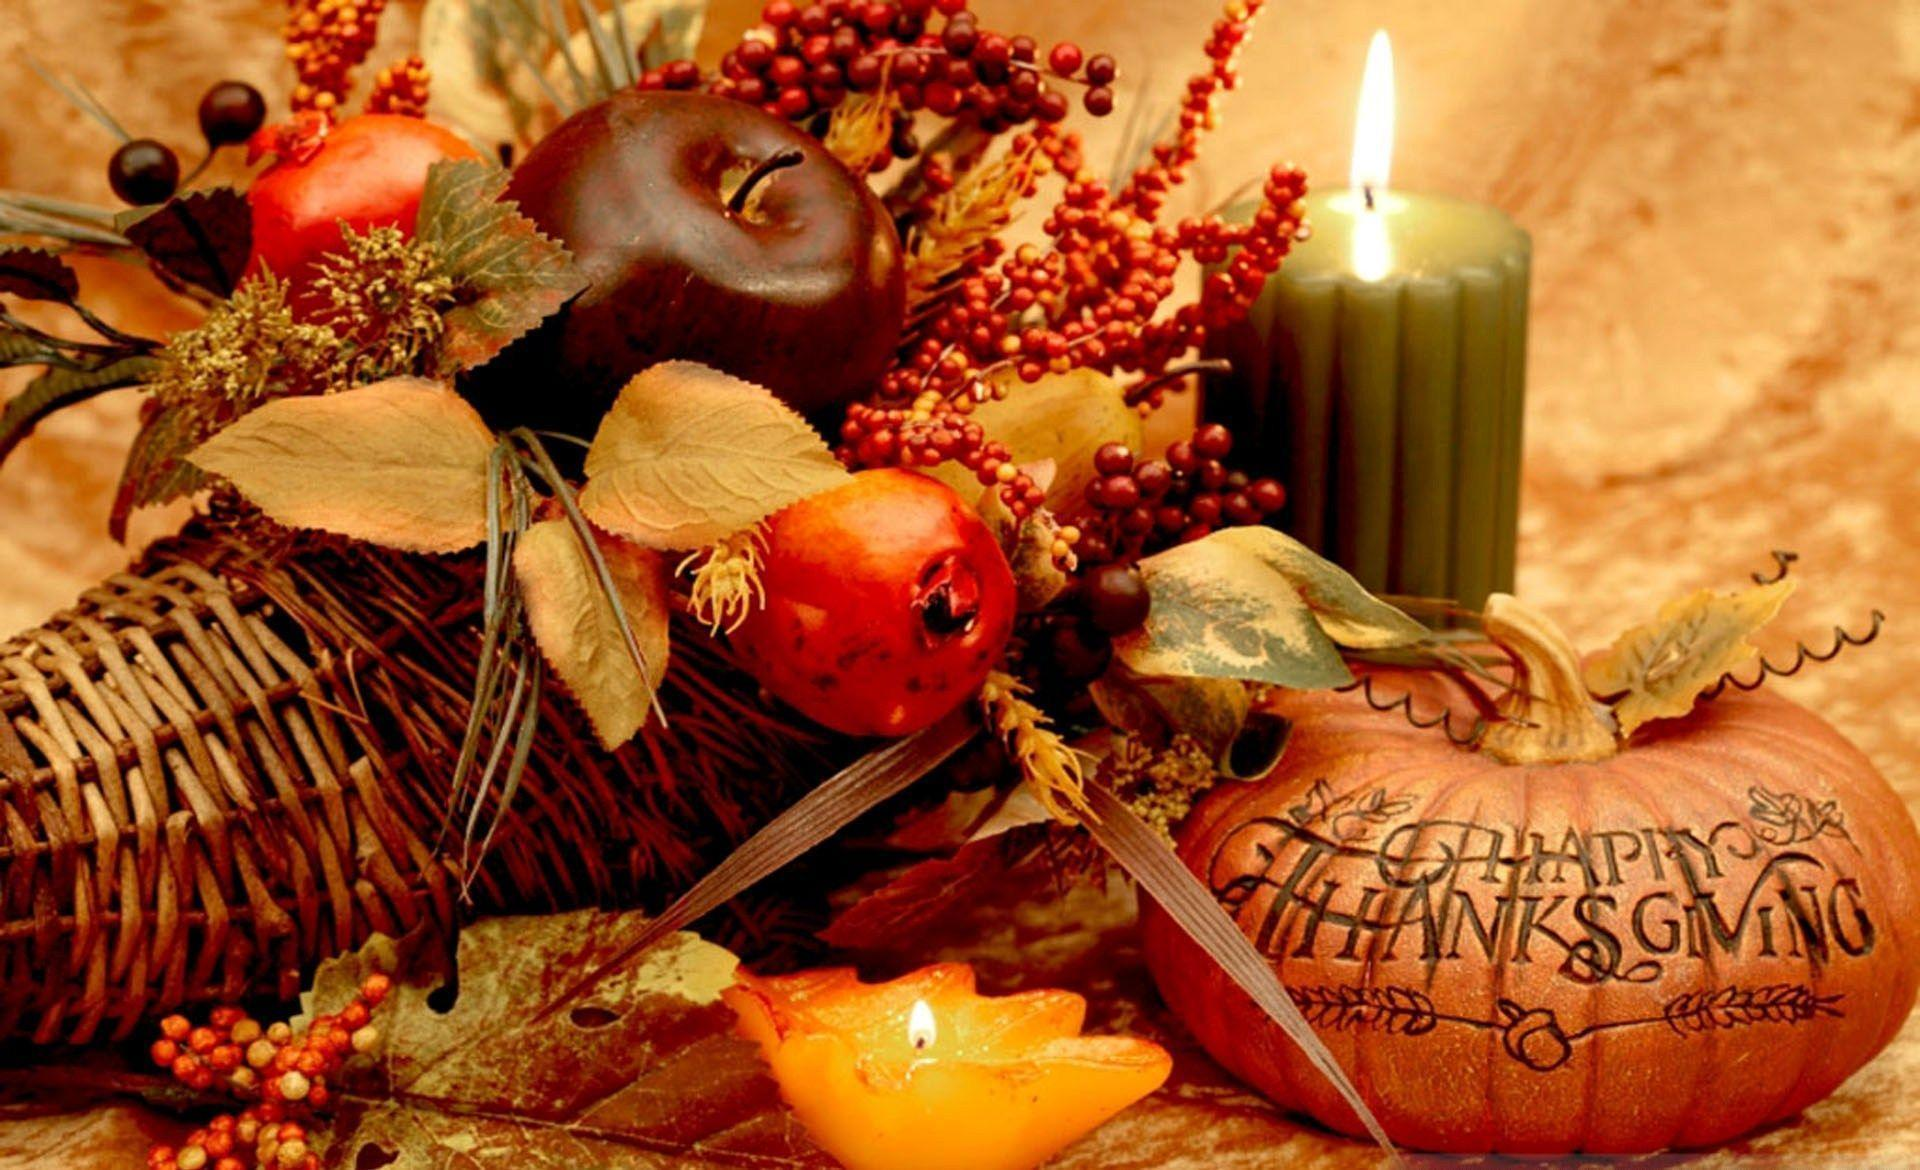 definition thanksgiving theme wallpaper - photo #7